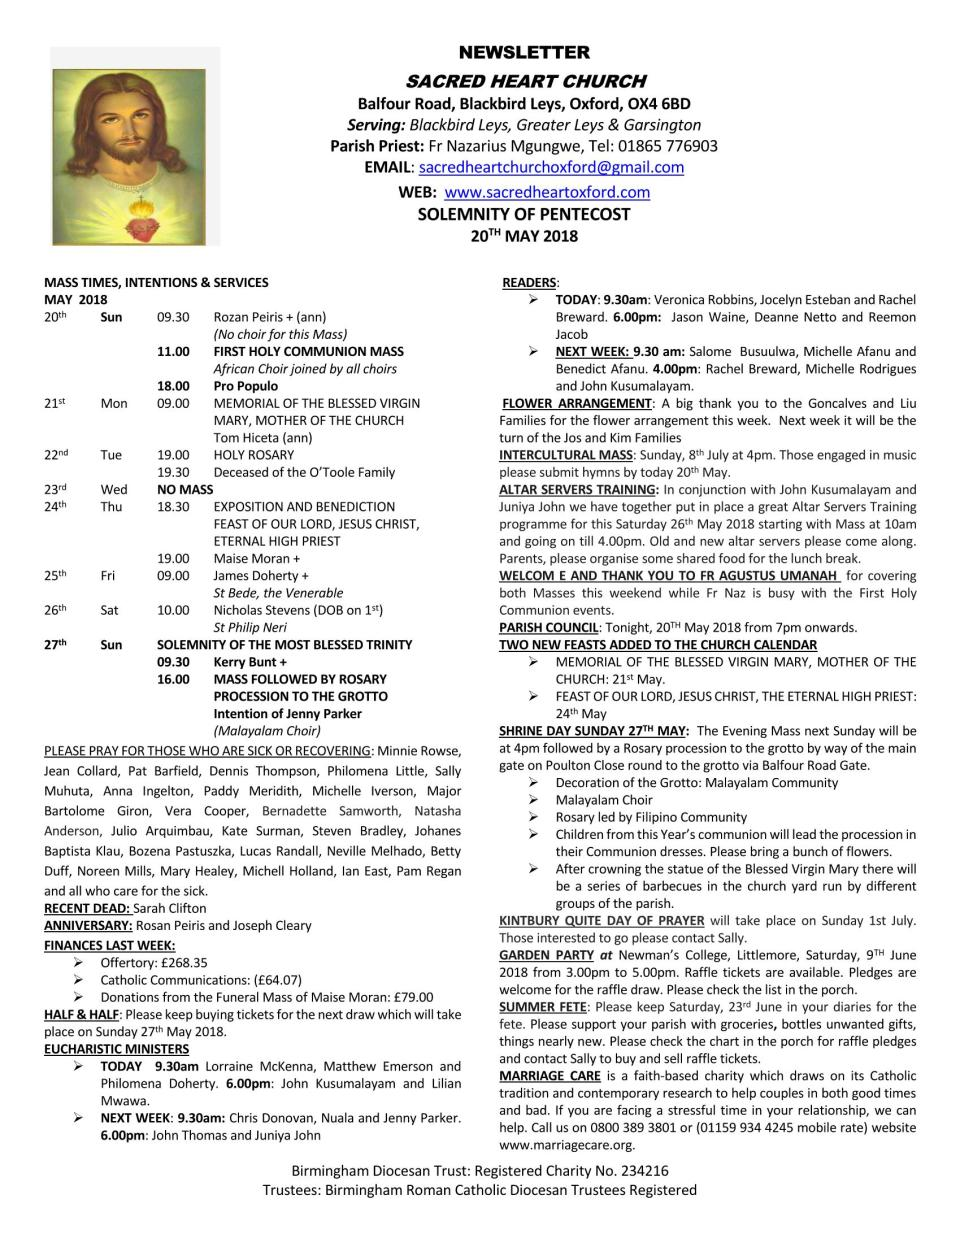 20th May, 2018 - Solemnity of Pentecost_Page_1